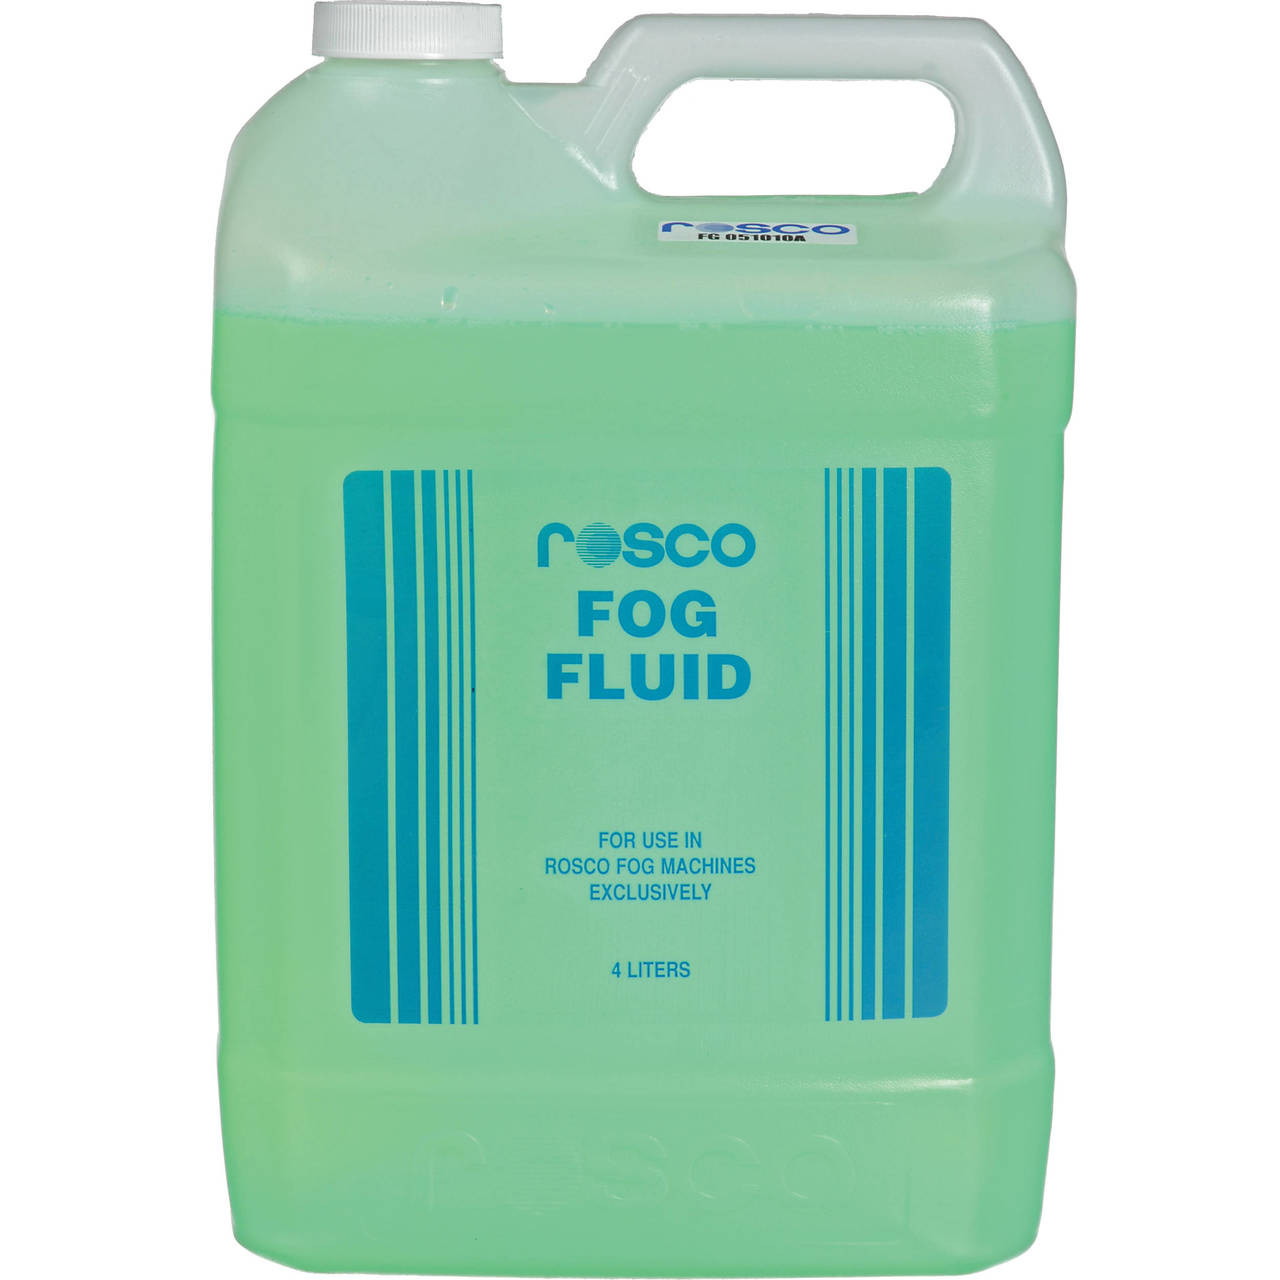 Rosco Fog Fluid - 4 Liter